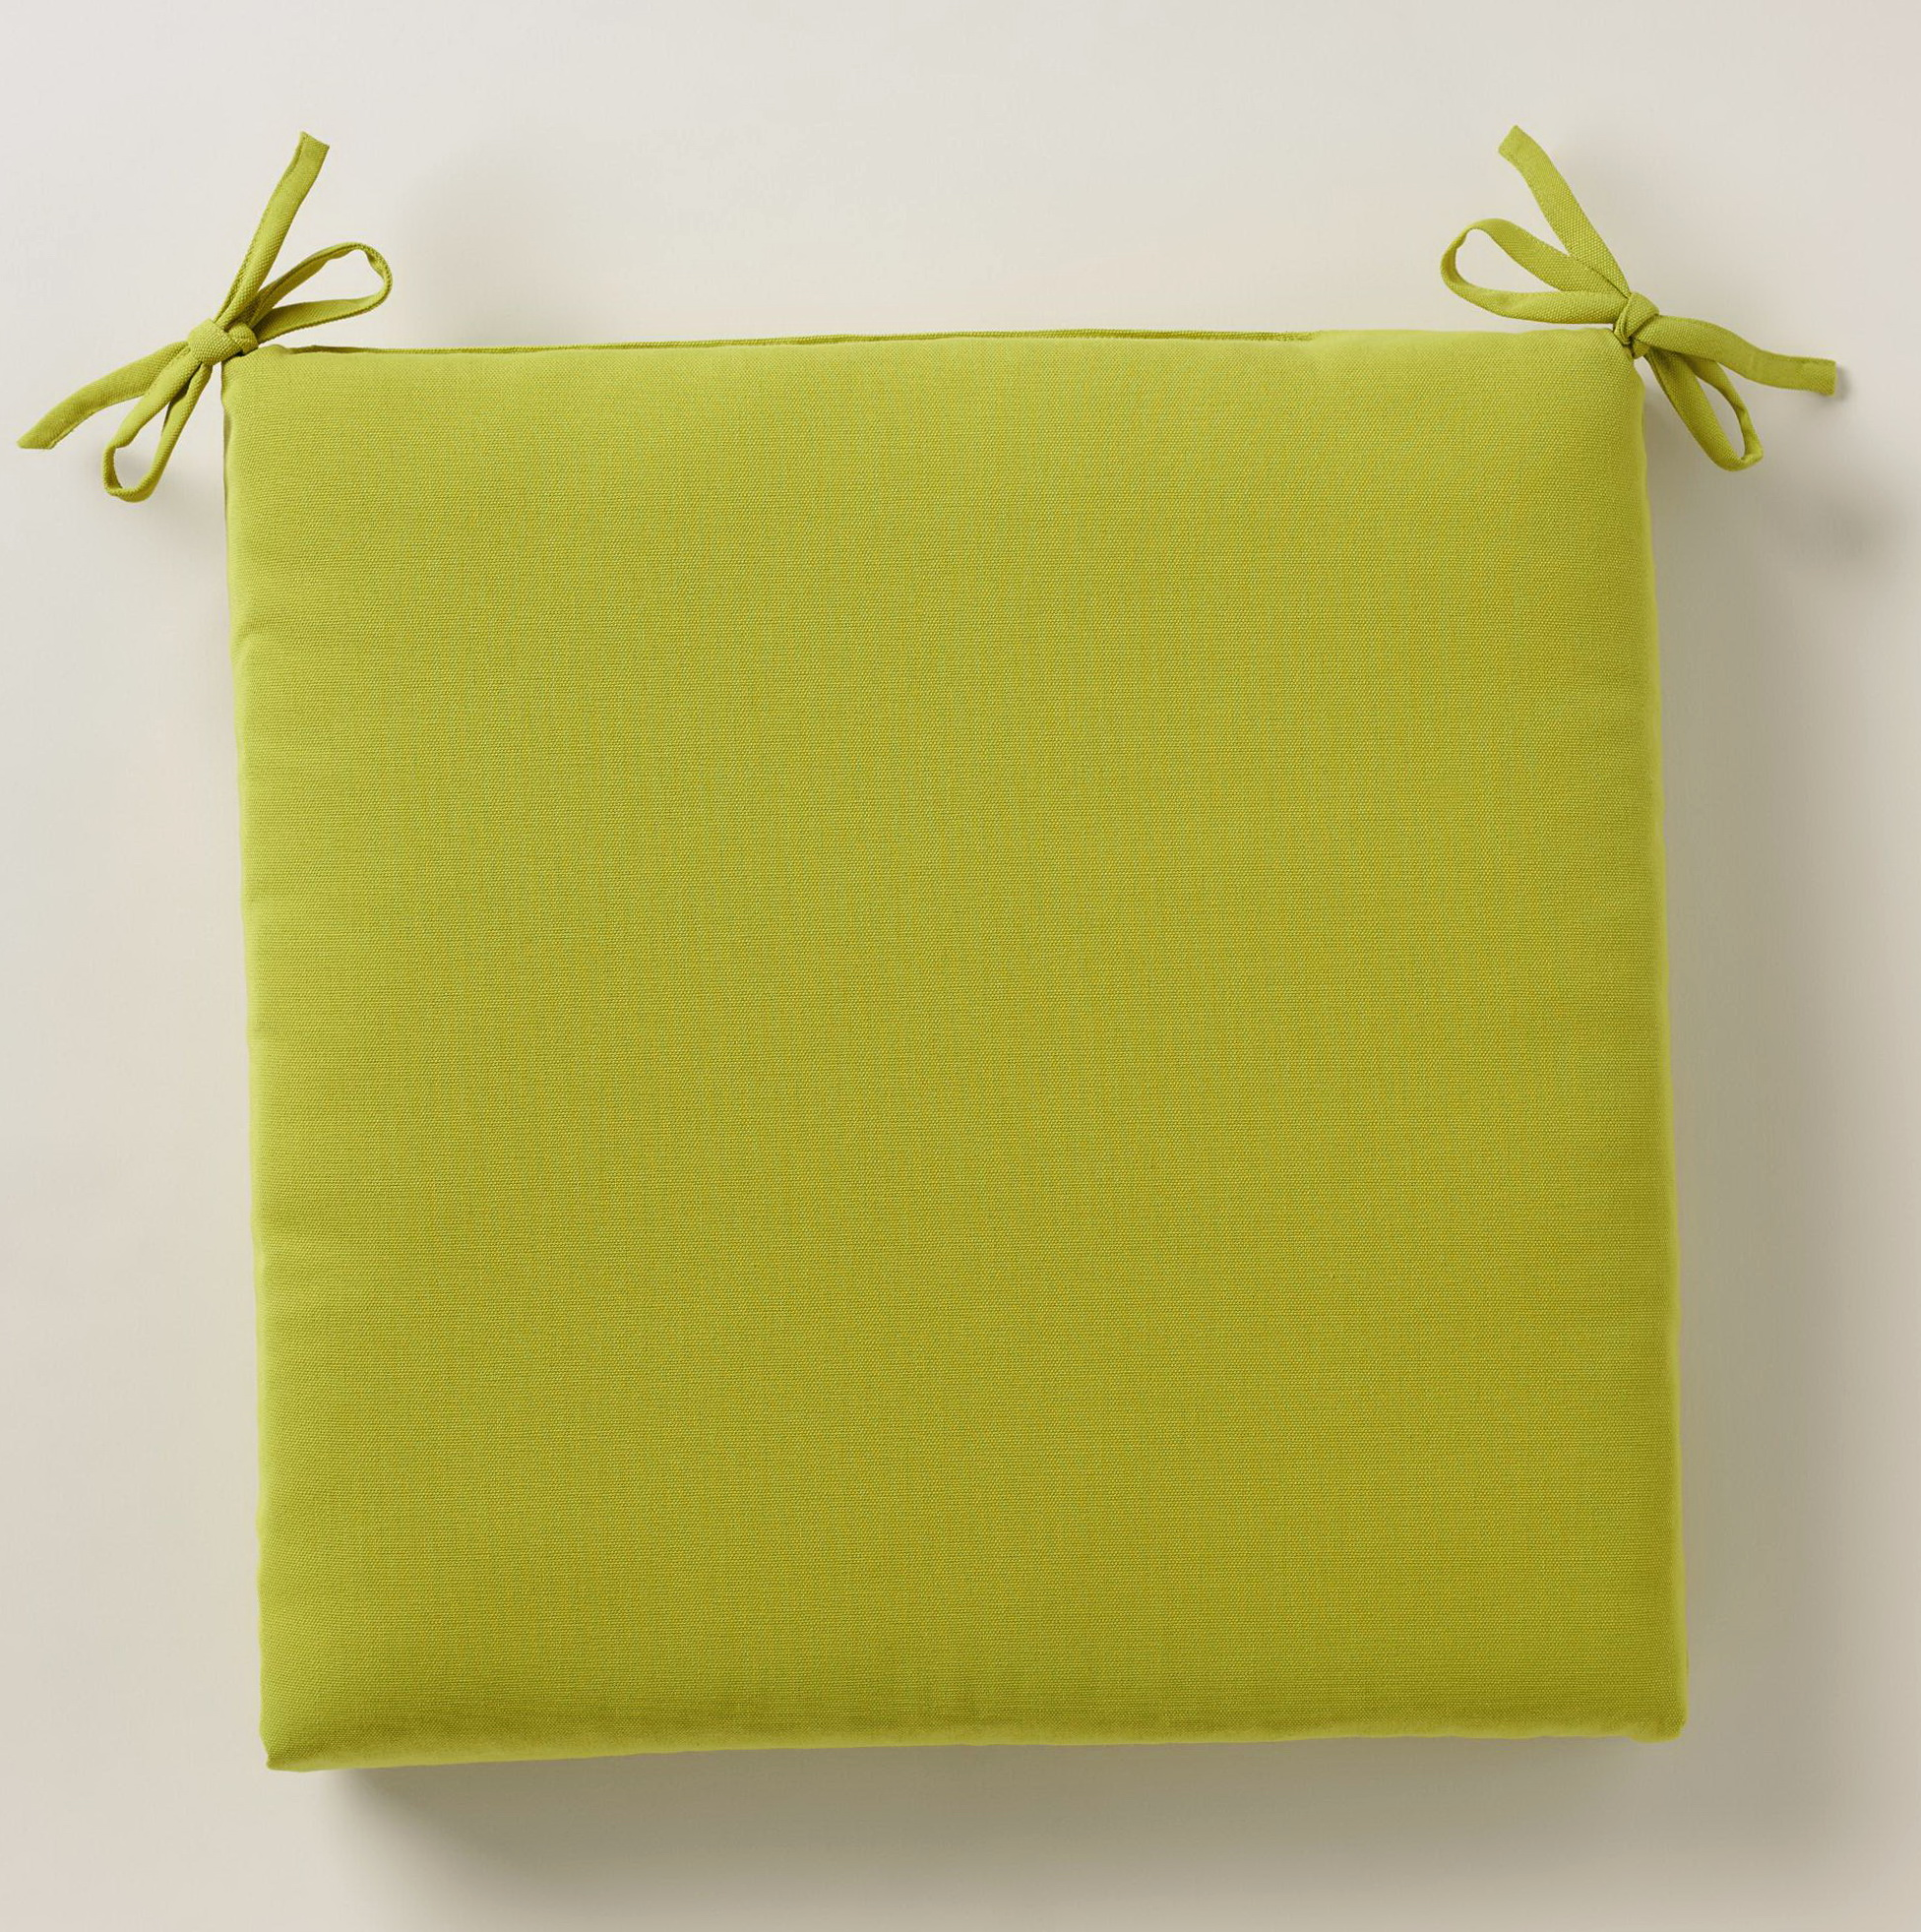 Cushions For Outdoor Chairs Adelaide